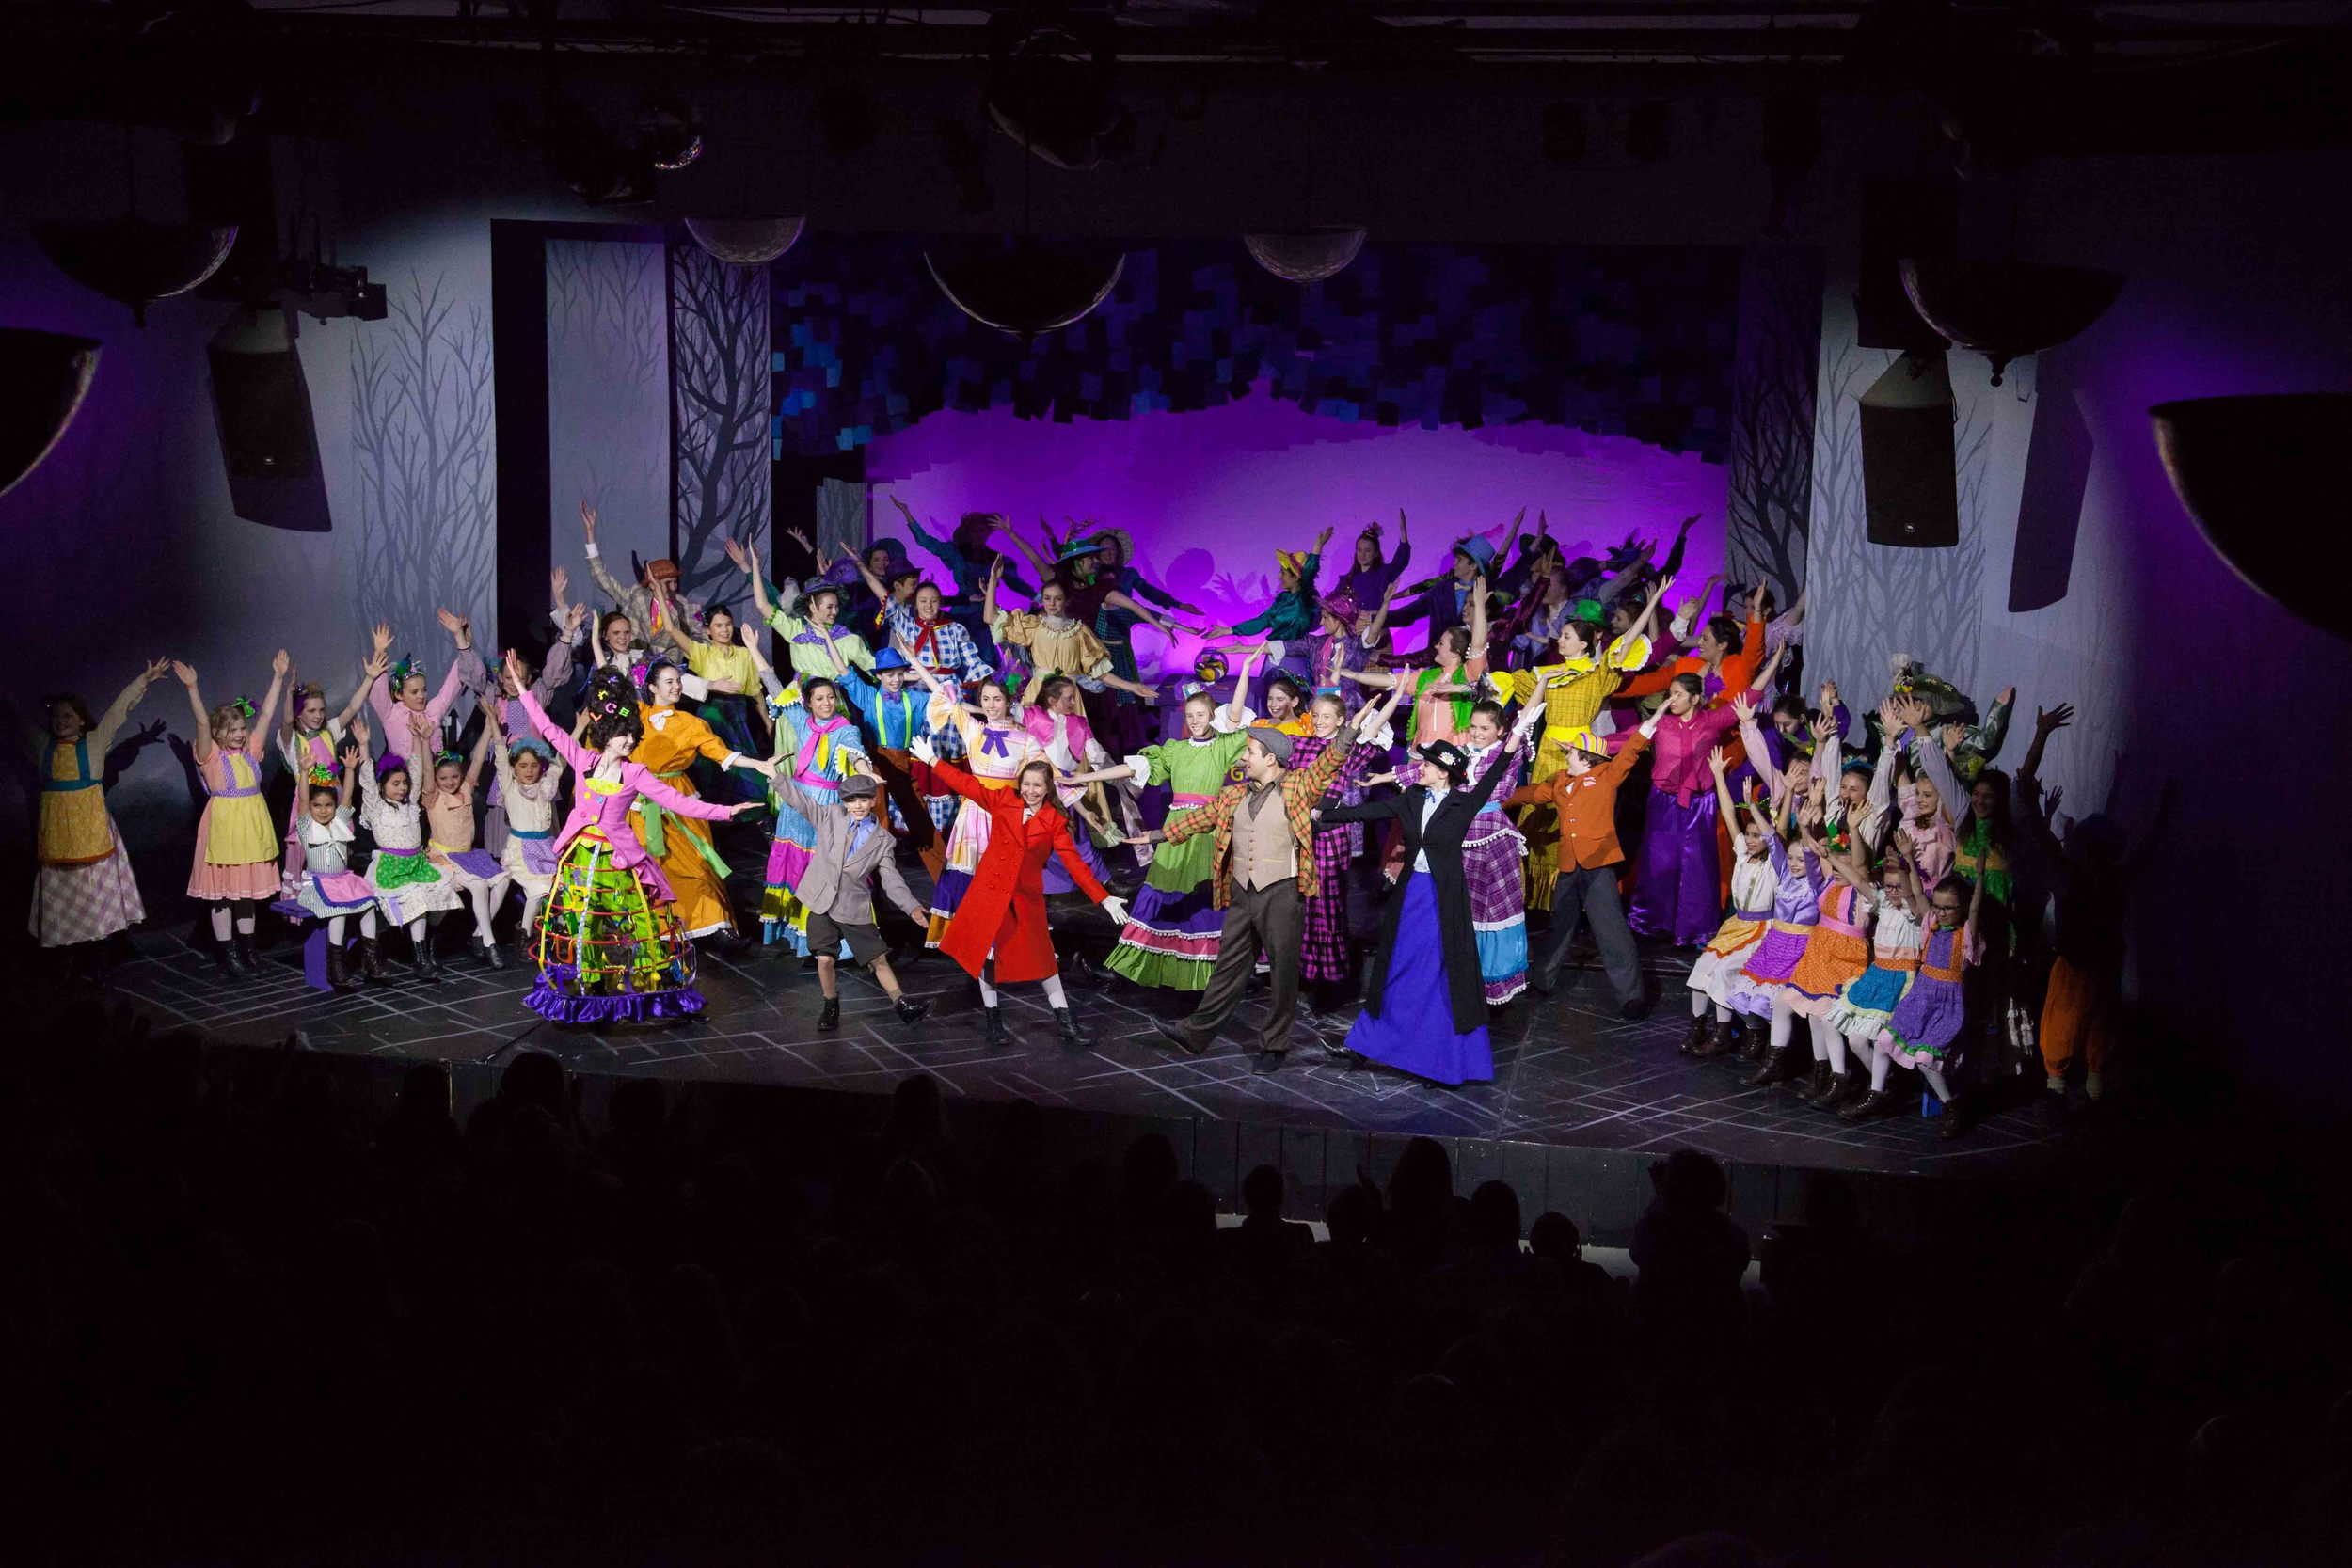 2-4-16 Mary Poppins Proper Cast 0272.jpg